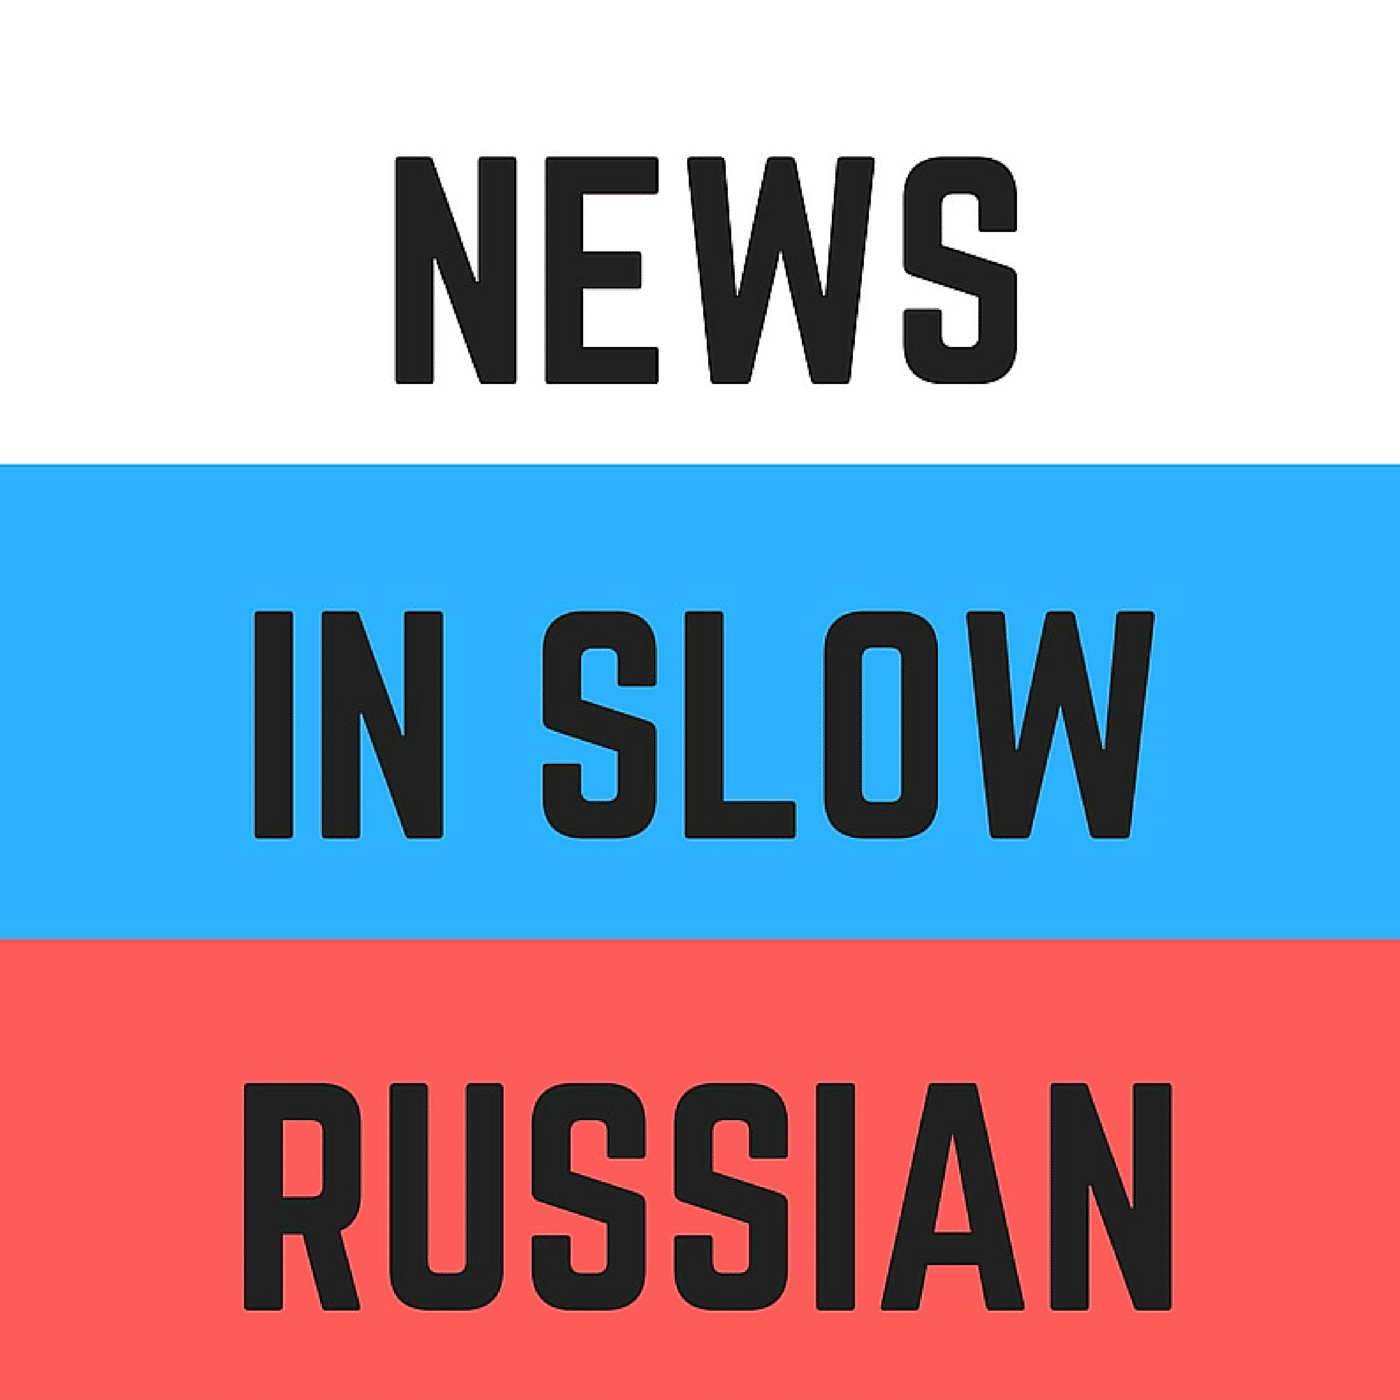 learn-russian-news